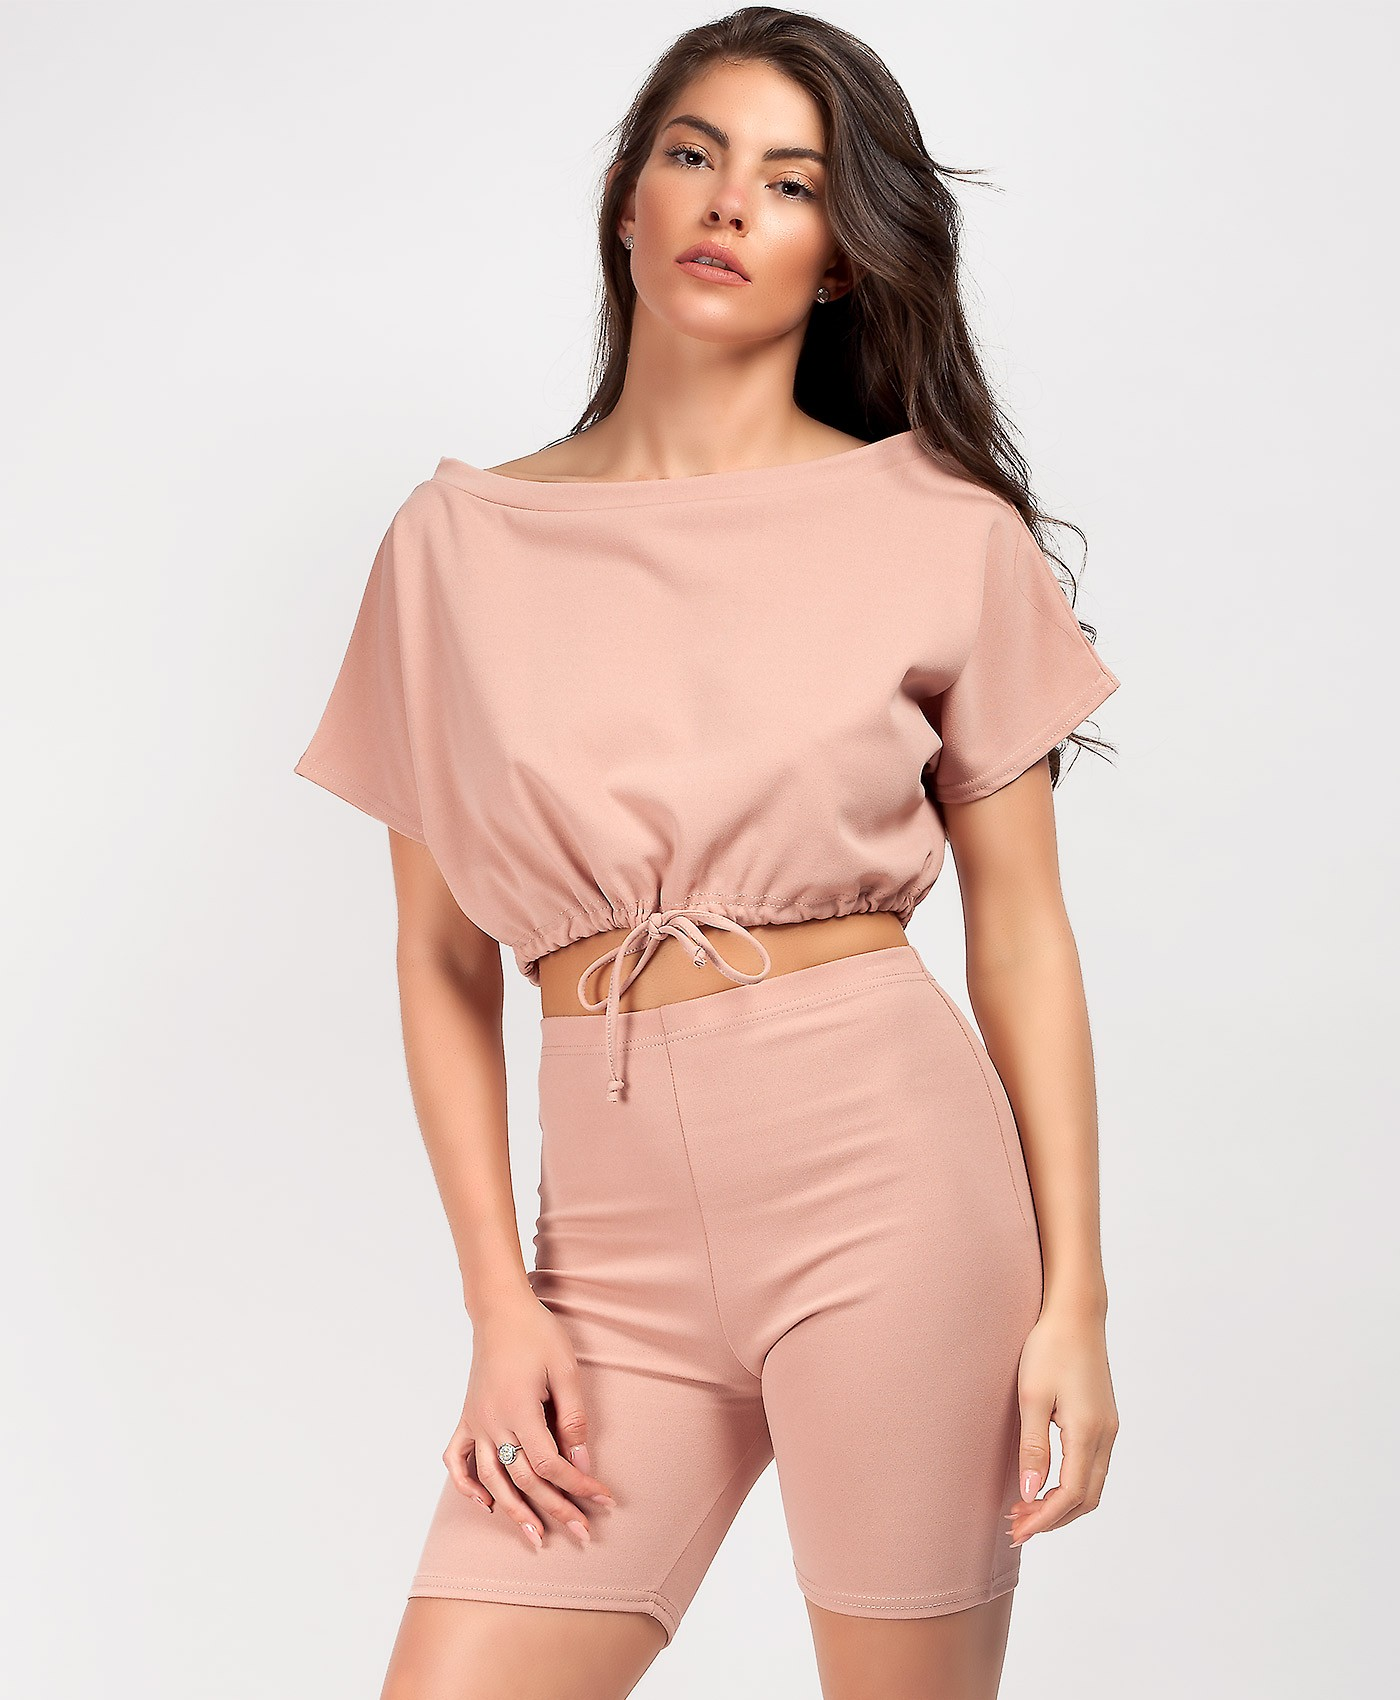 Pink-Boxy-Bardot-Drawstring-Crop-Top-&-Cycling-Short-Co-Ord-2